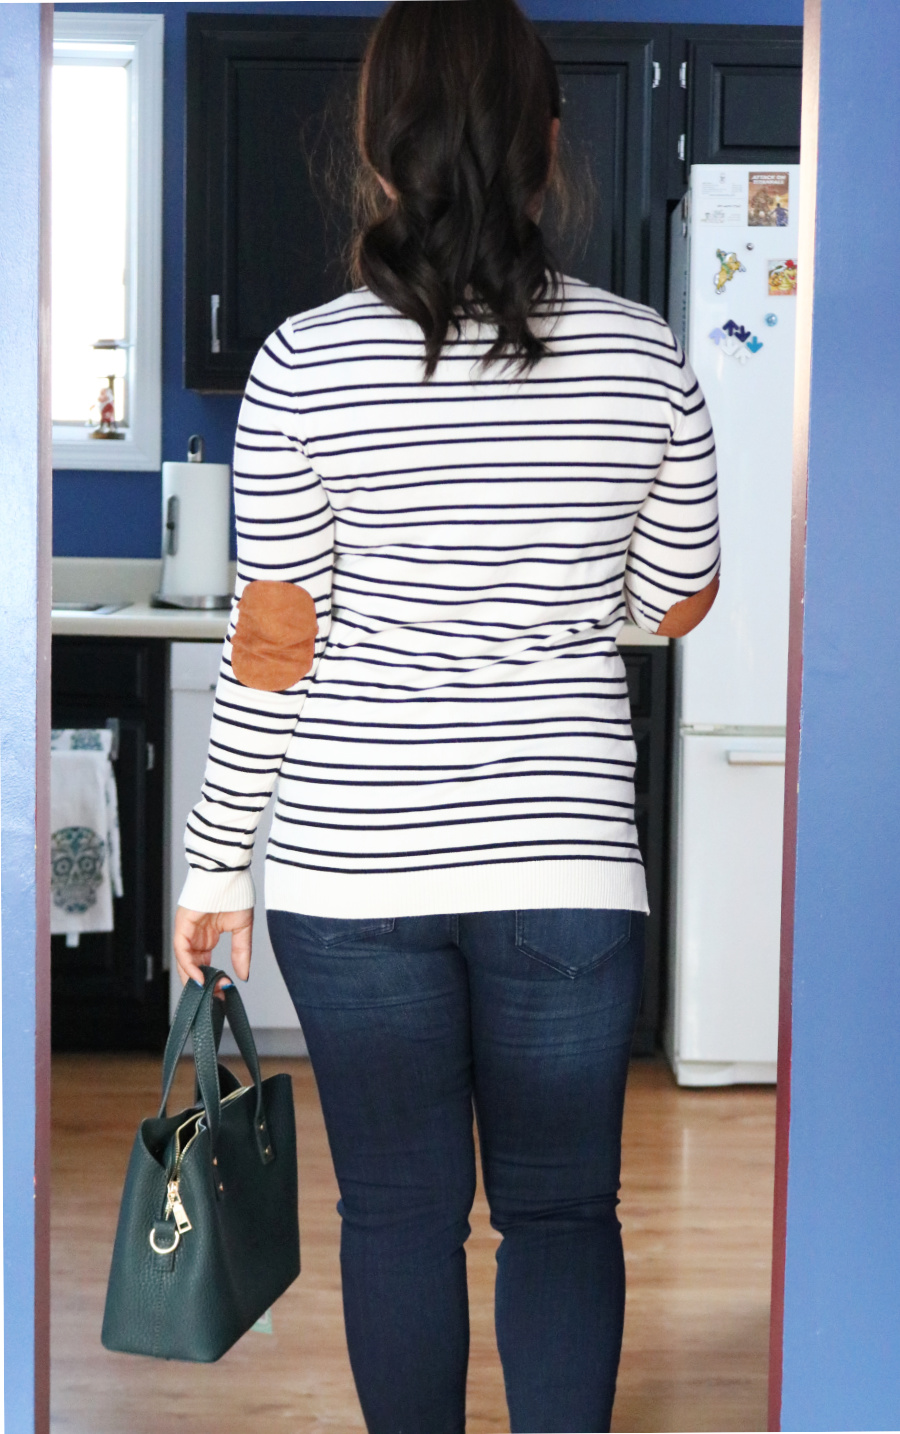 Casual Wear Stitch Fix Review - Liverpool Jeans